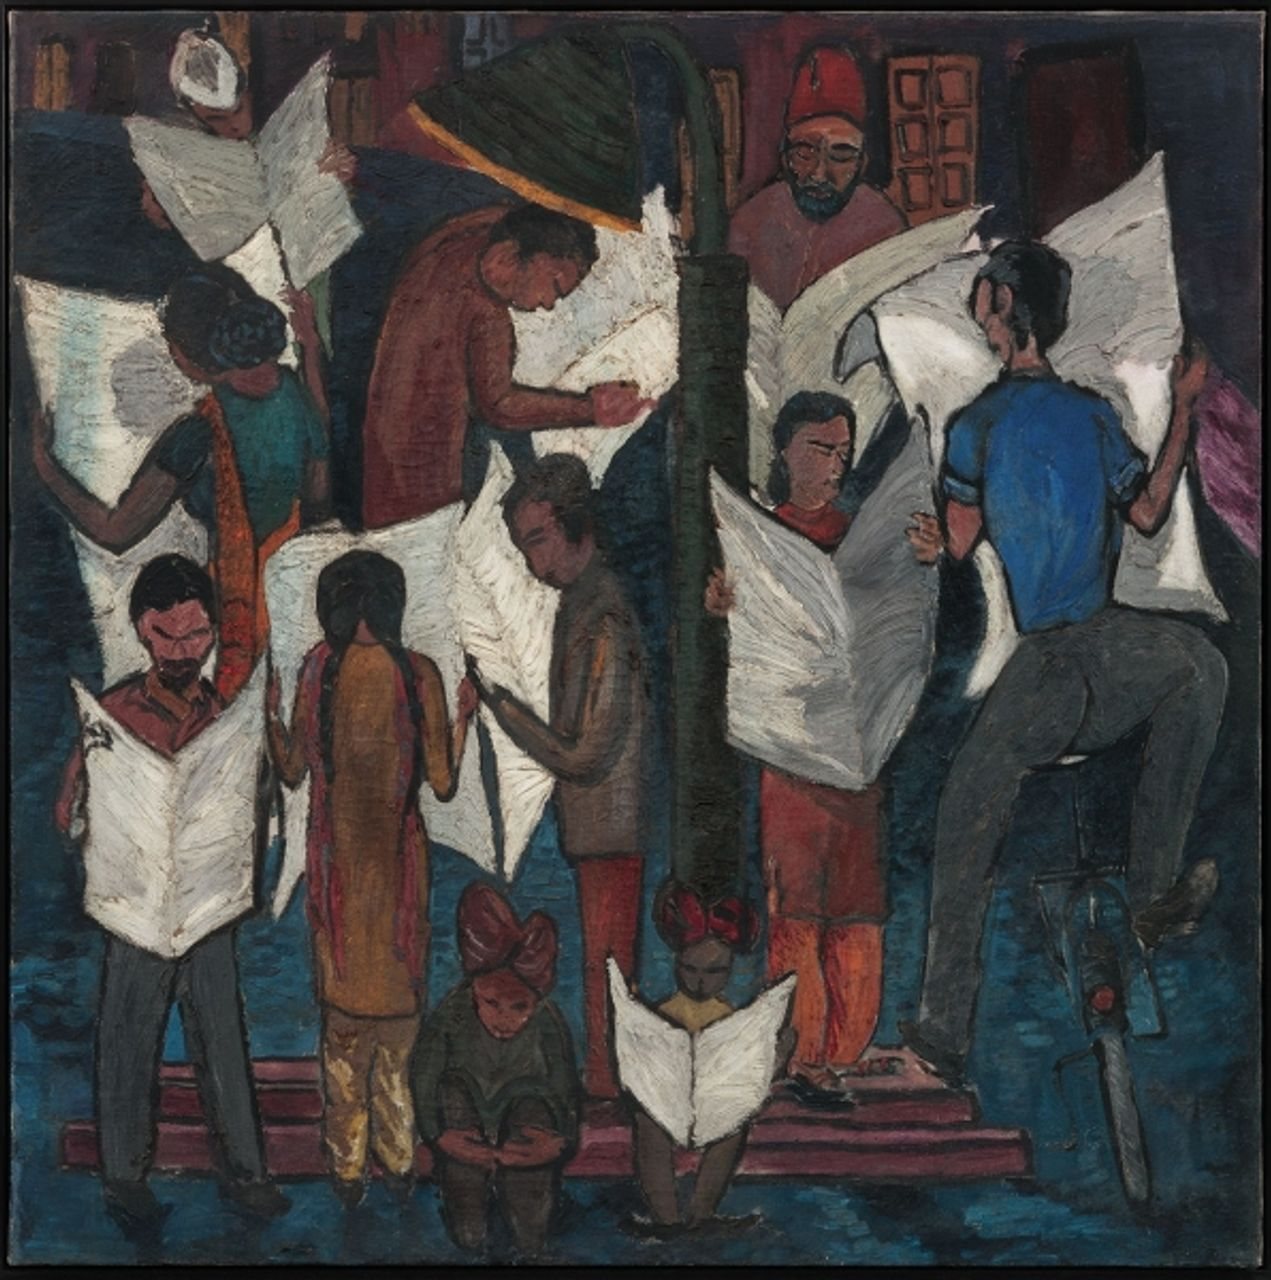 Krishen Khanna, News of Gandhiji's Death (1948). Oil on canvas